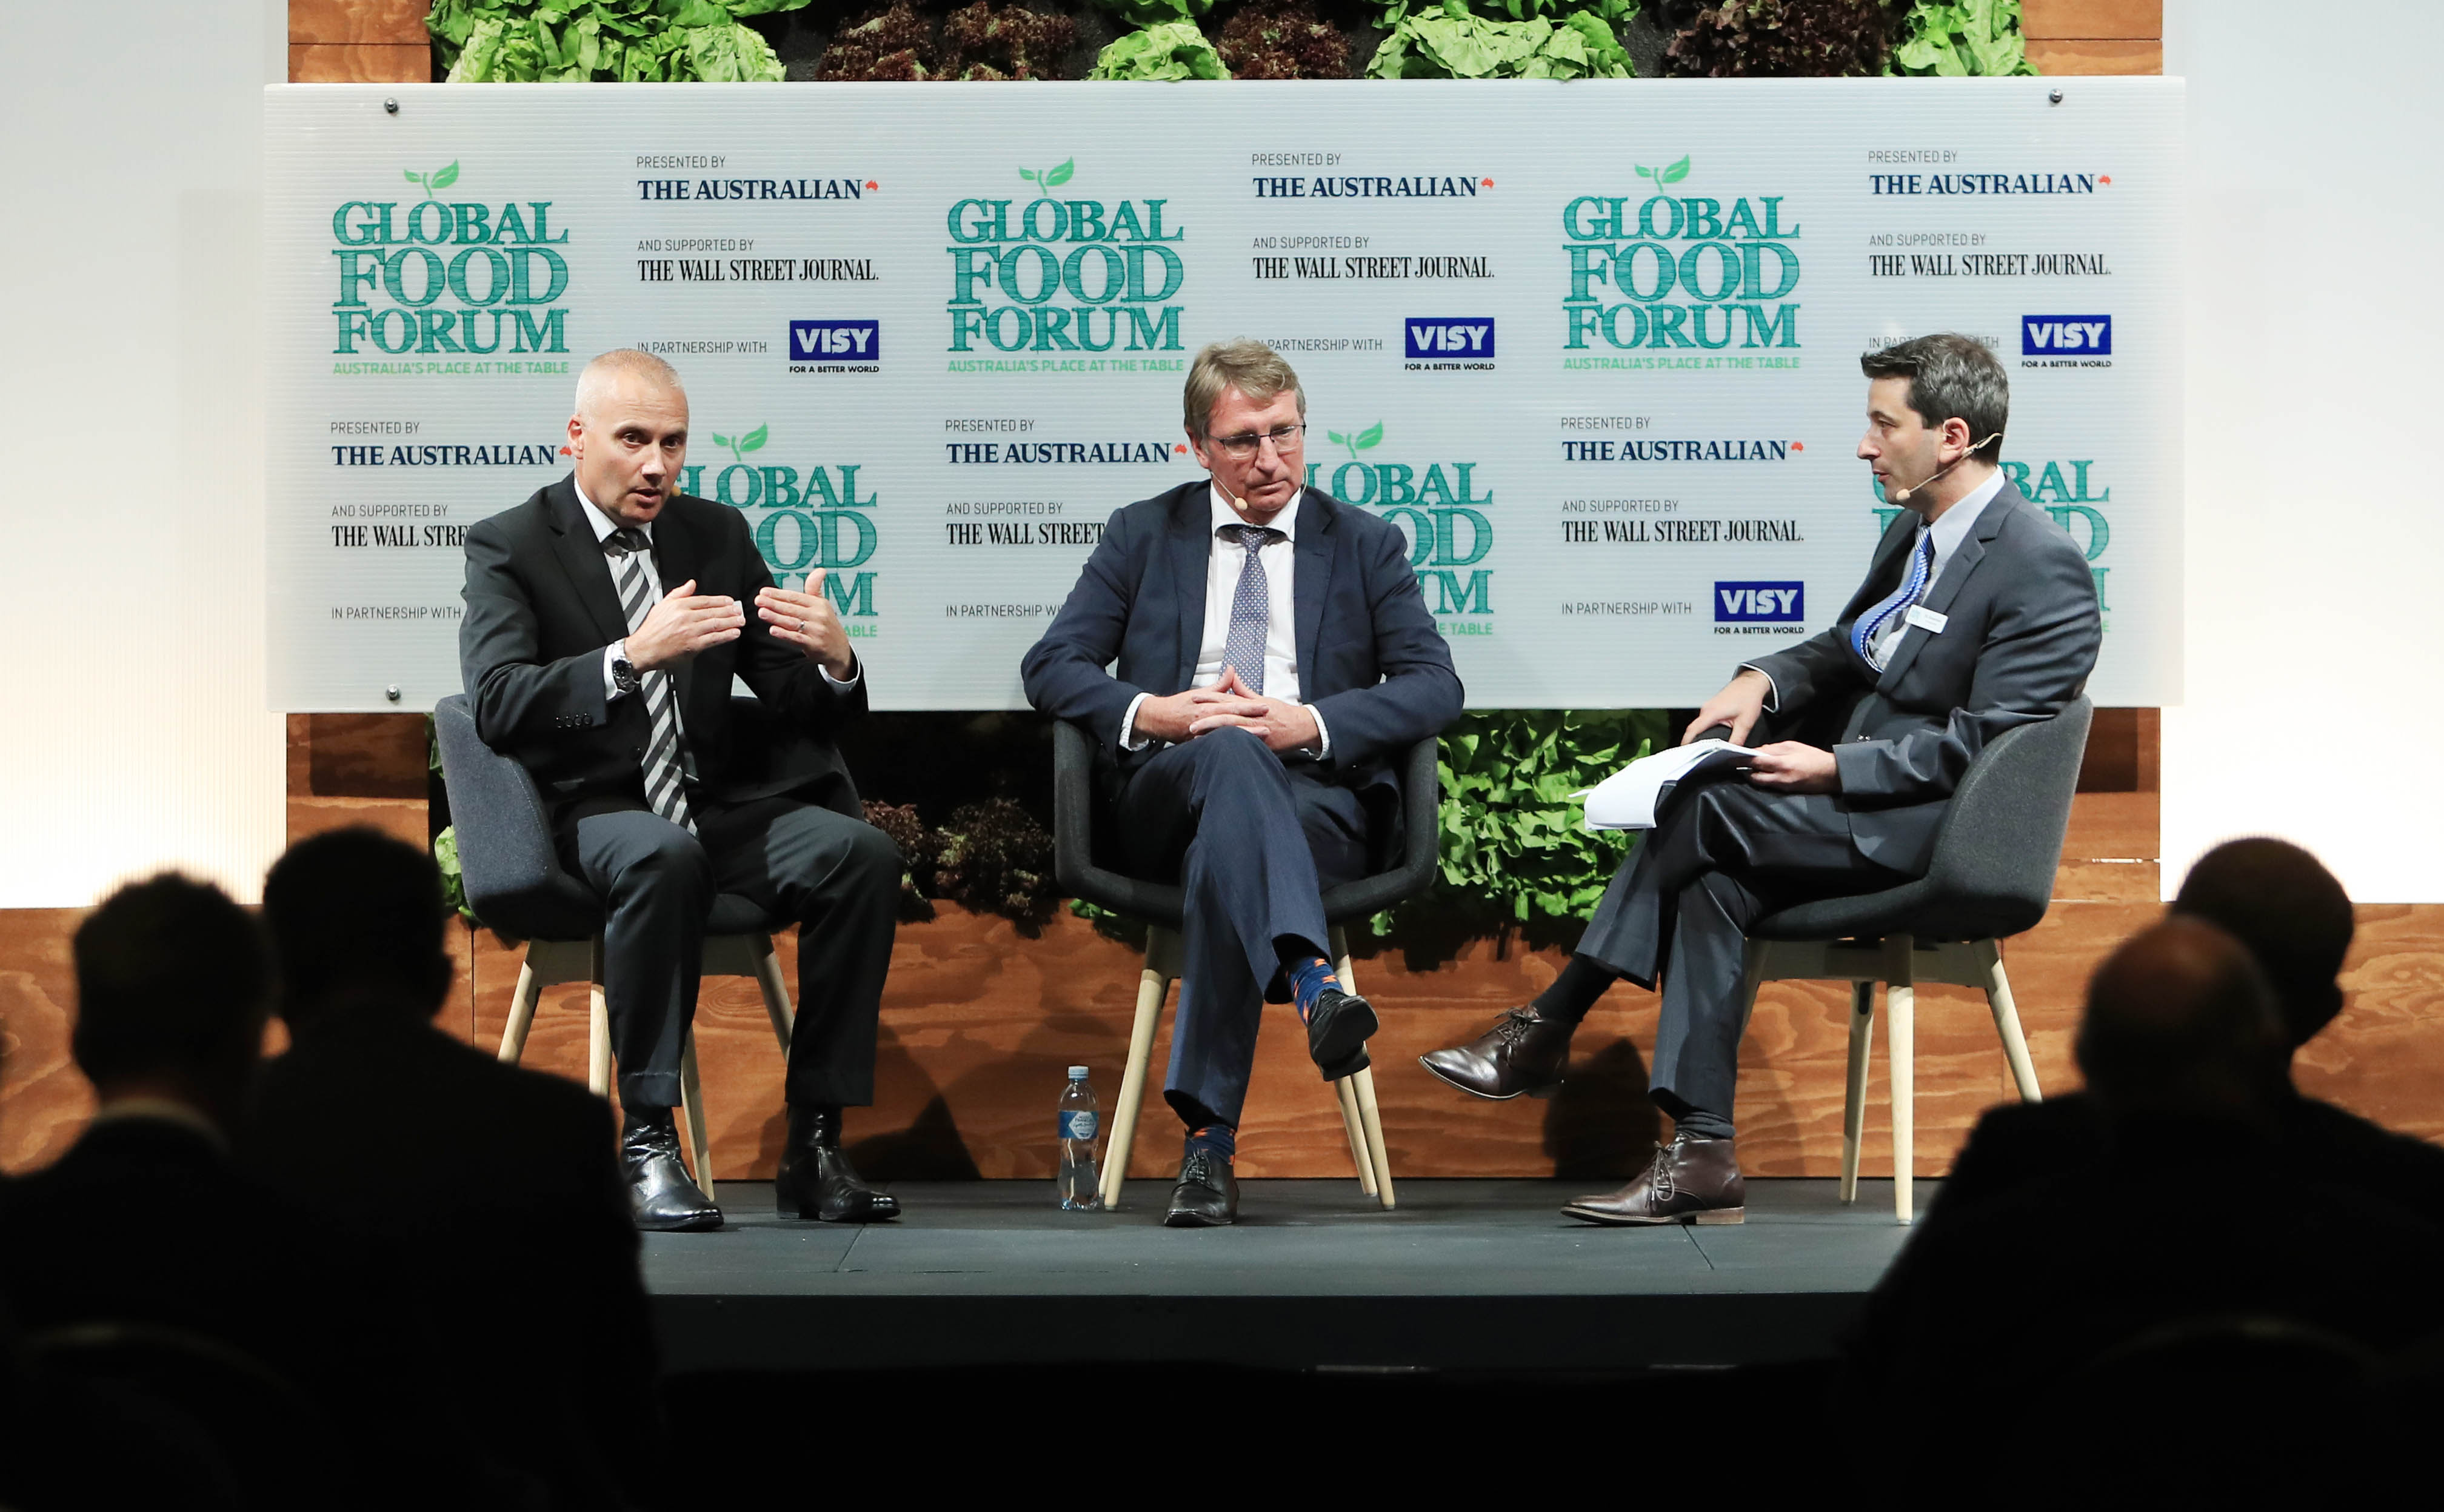 28/03/17 Managing director of Fonterra Australia, RenŽ Dedoncker and Barry Irvin from Bega Cheese speaking to The Australian's Eli Greenblat during the Global Food Forum. Aaron Francis/The Australian